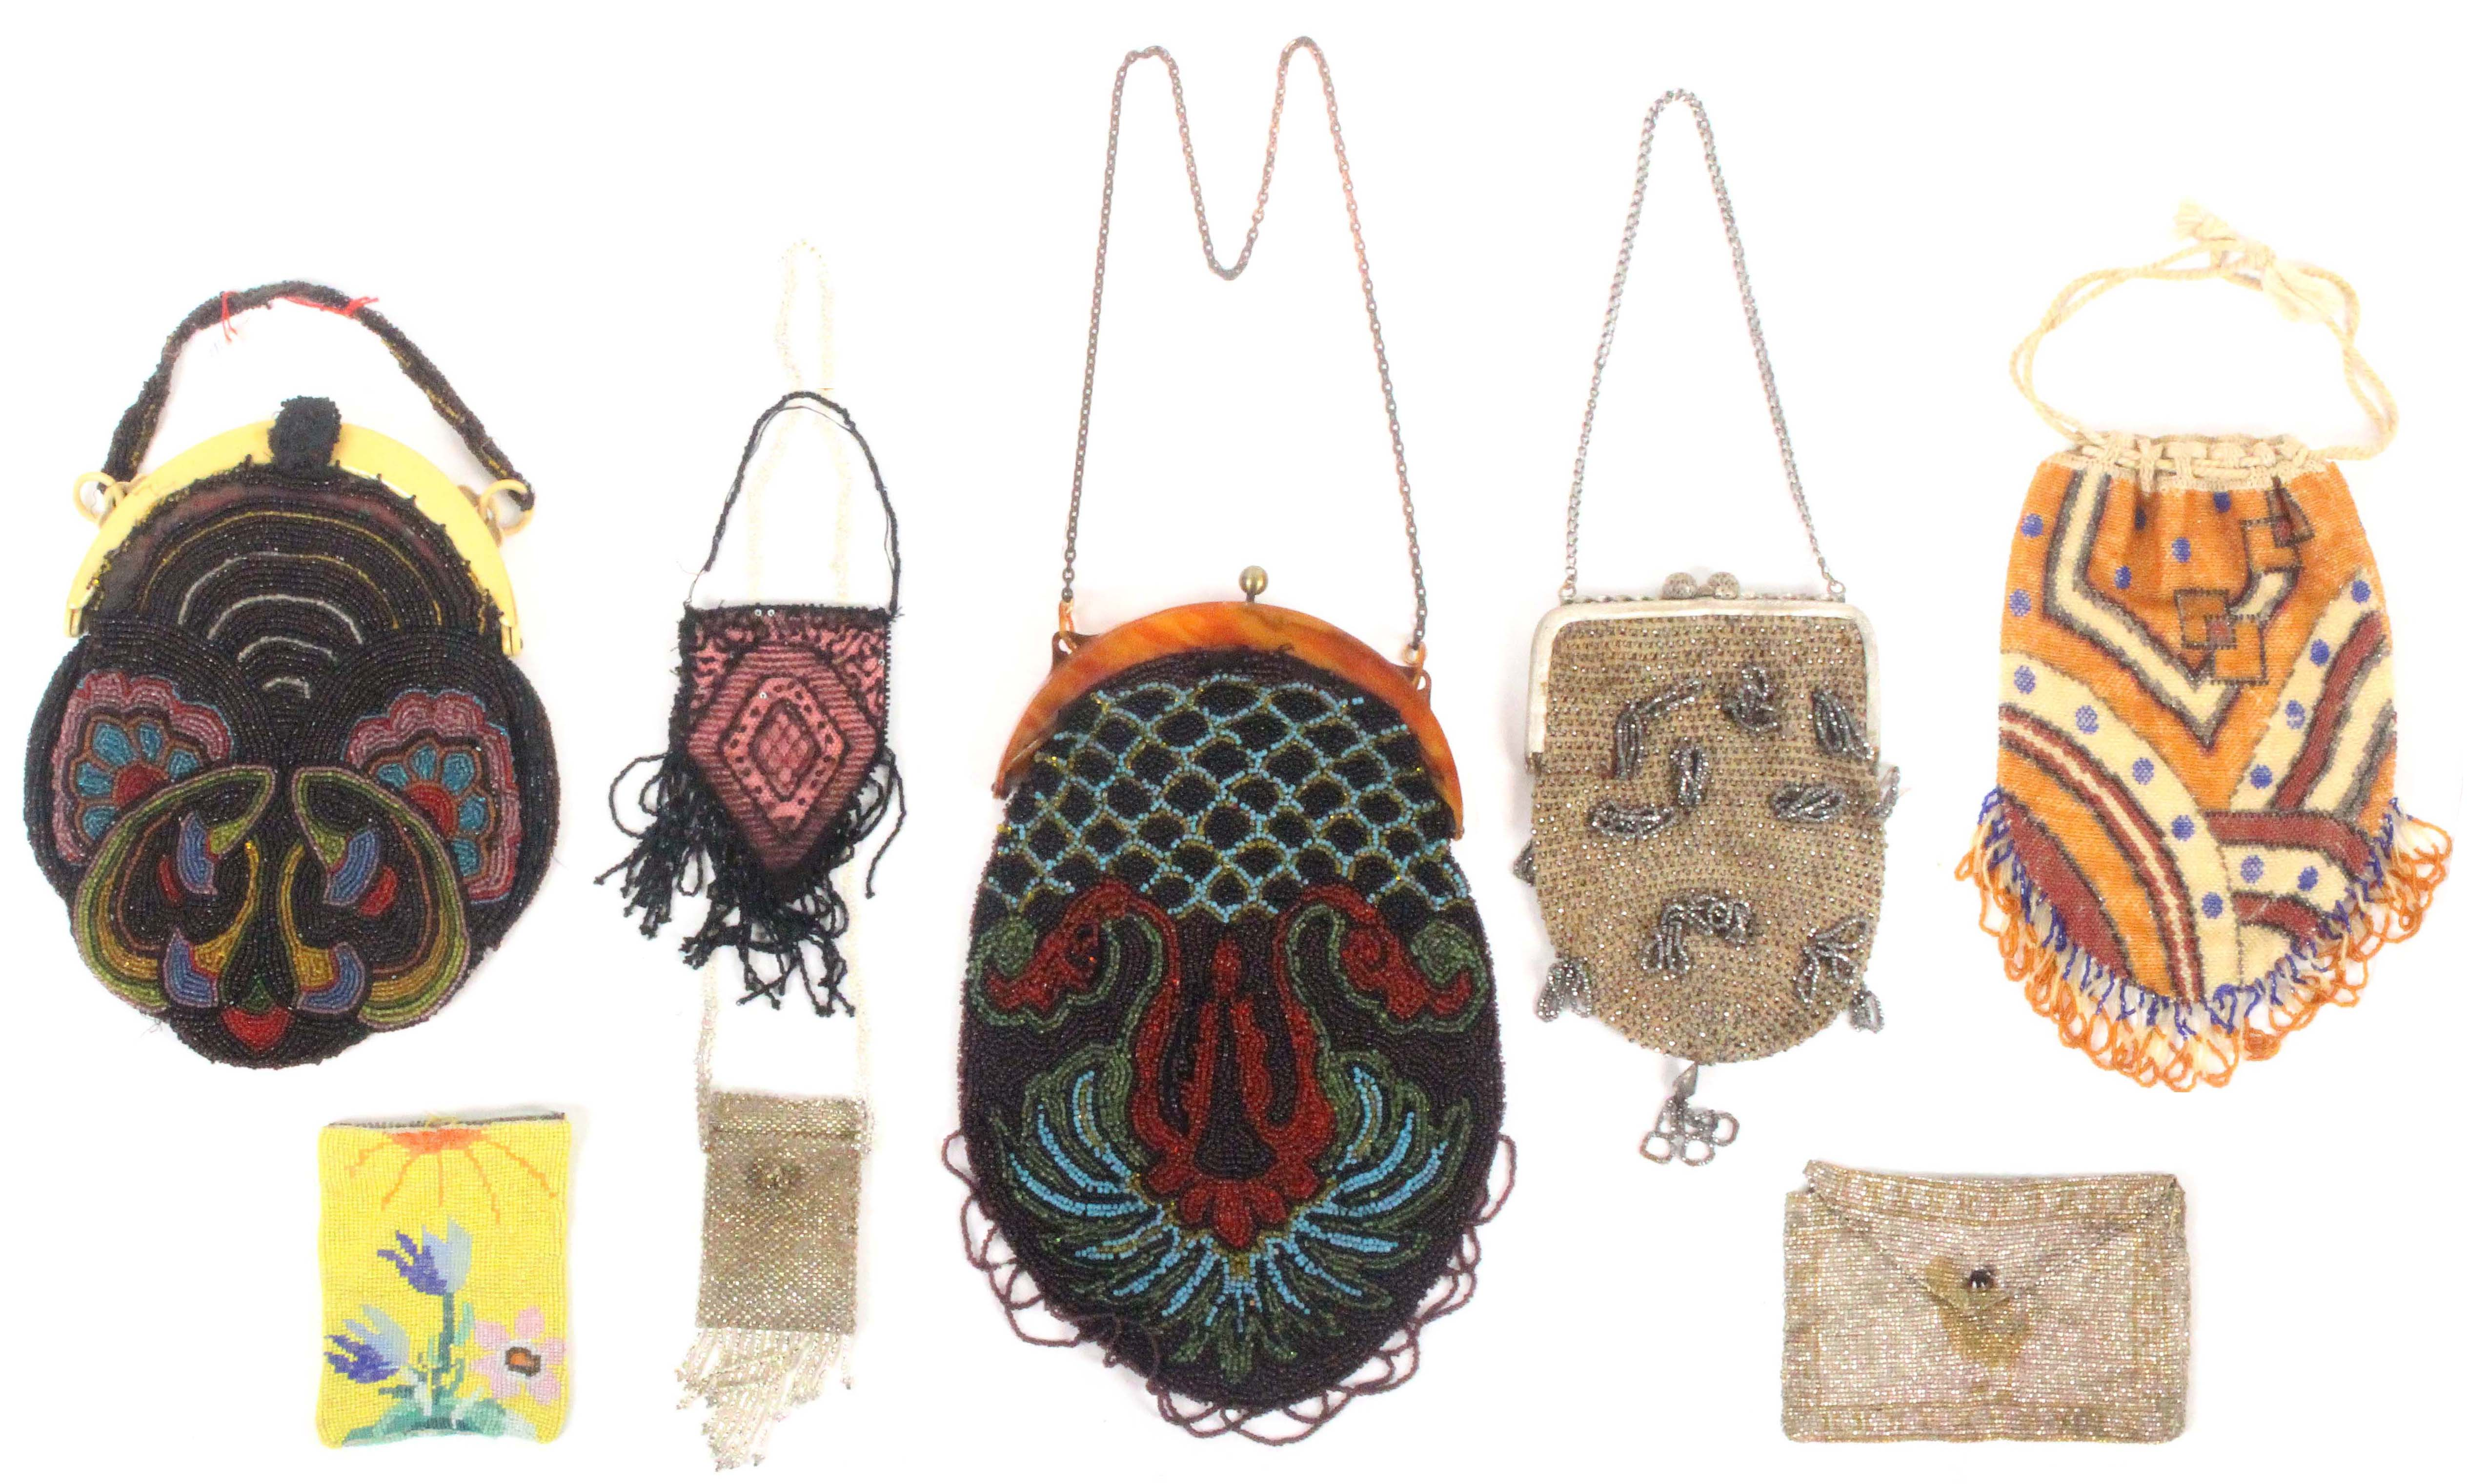 Eight early 20th Century beadwork bags and purses, comprising two geometric examples with